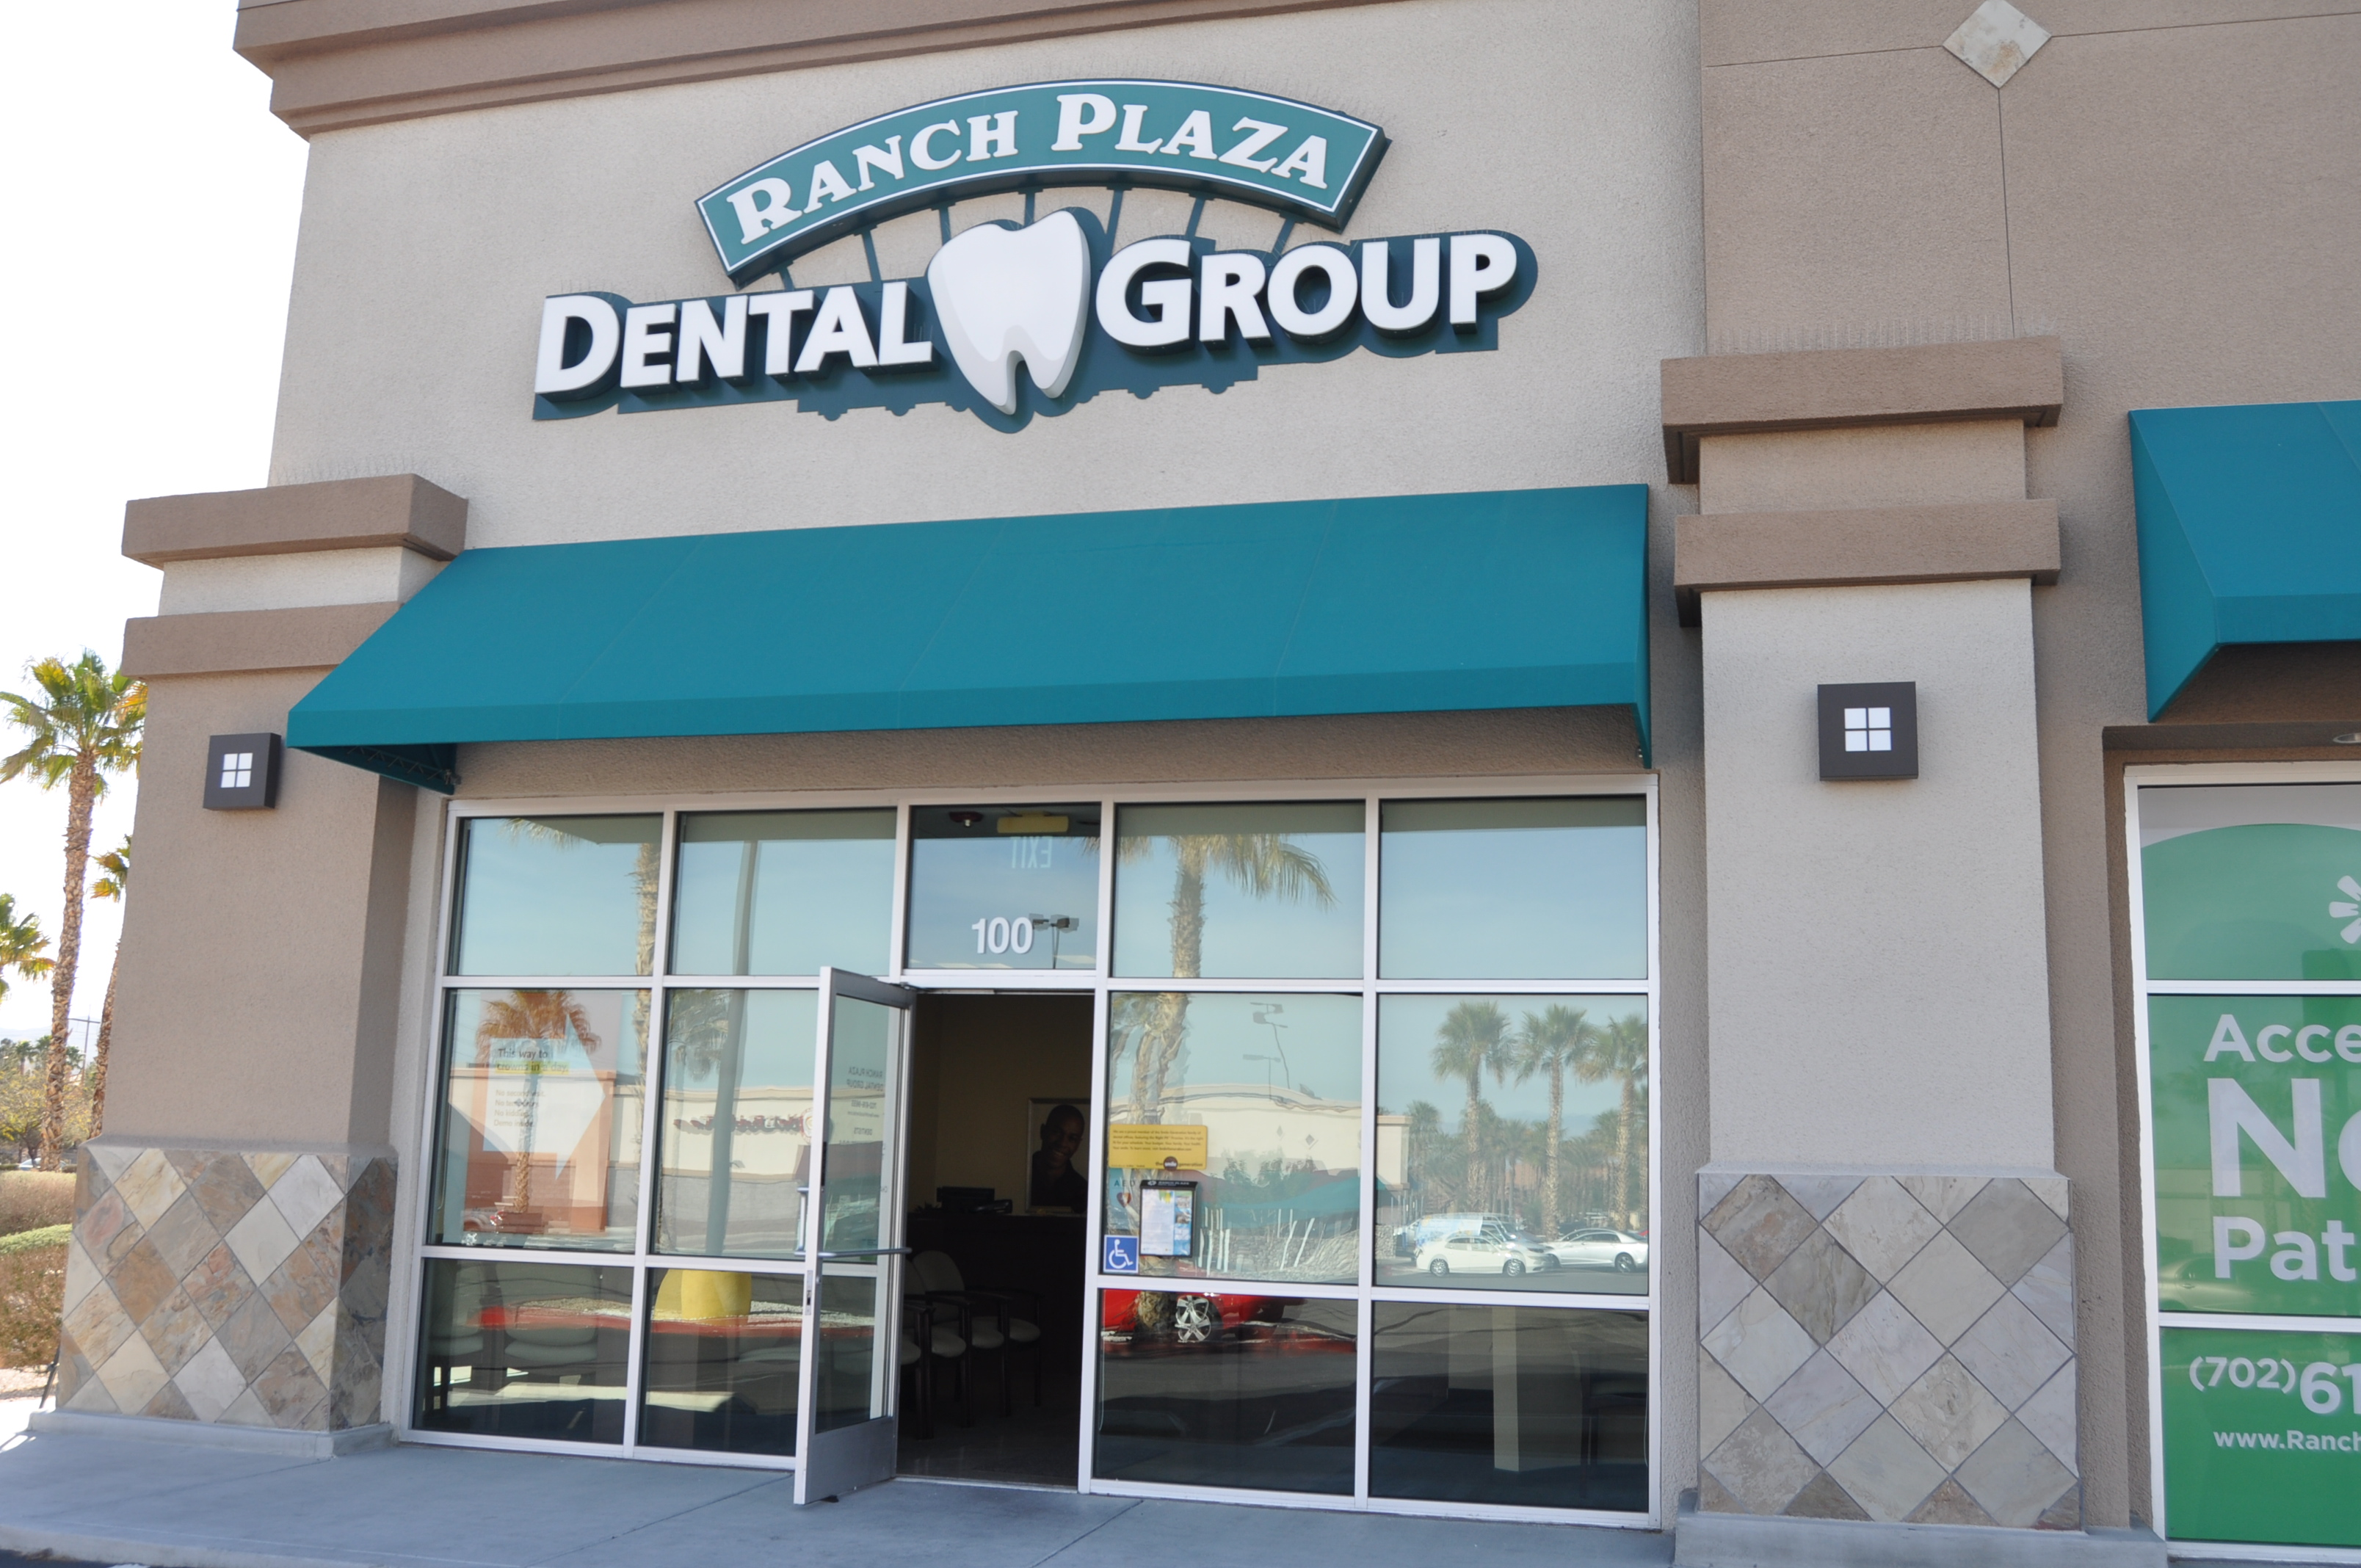 Ranch Plaza Dental Group - Las Vegas, NV - Looking for a family dentist in Las Vegas, NV? You have come to the right spot!